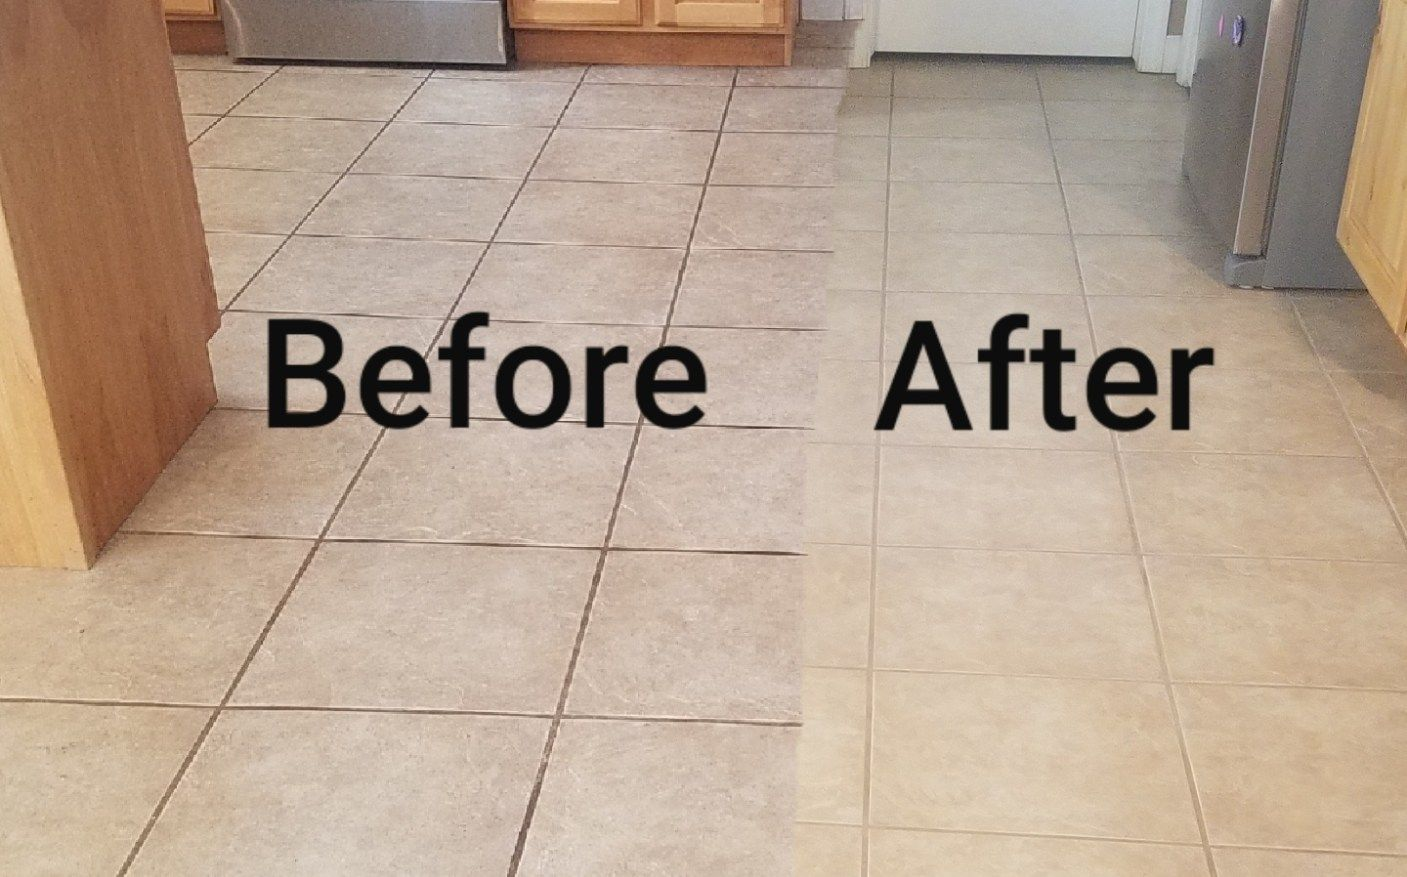 How to Clean Tile, Without Harsh Chemicals or Residue